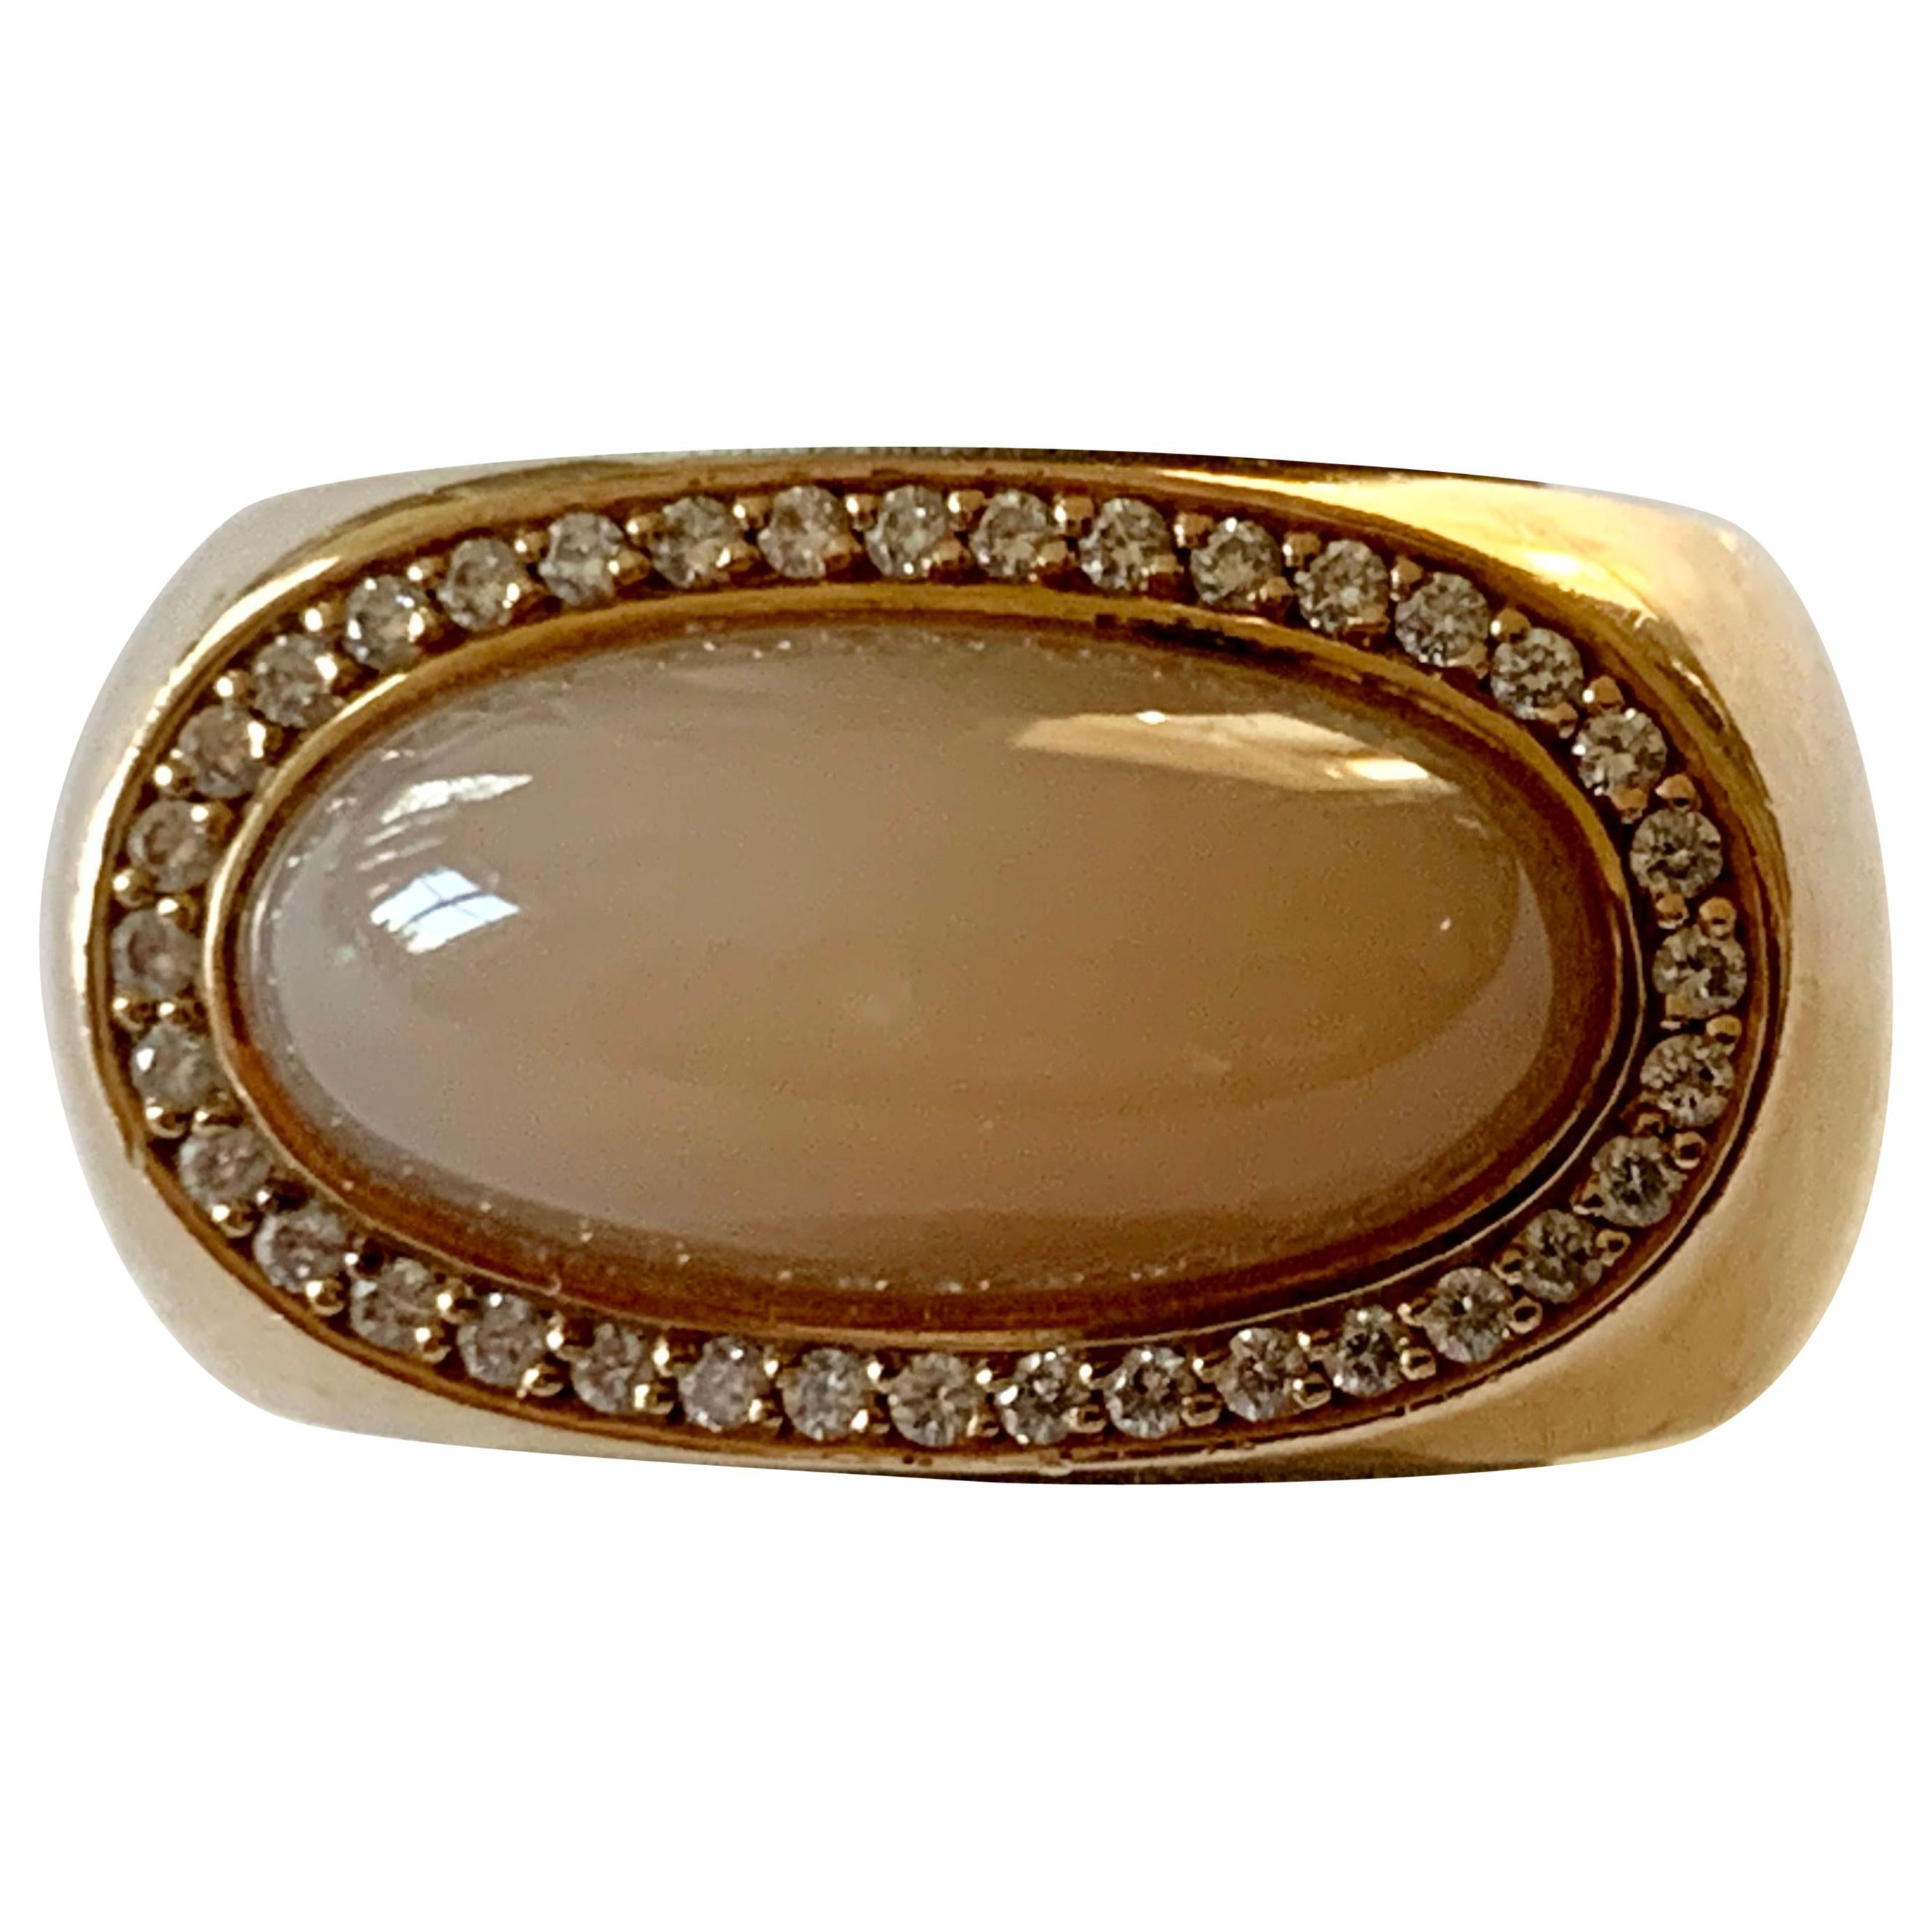 Very Solid 18 Karat Rose Gold Moonstone and Diamond Ring by Jochen Pohl